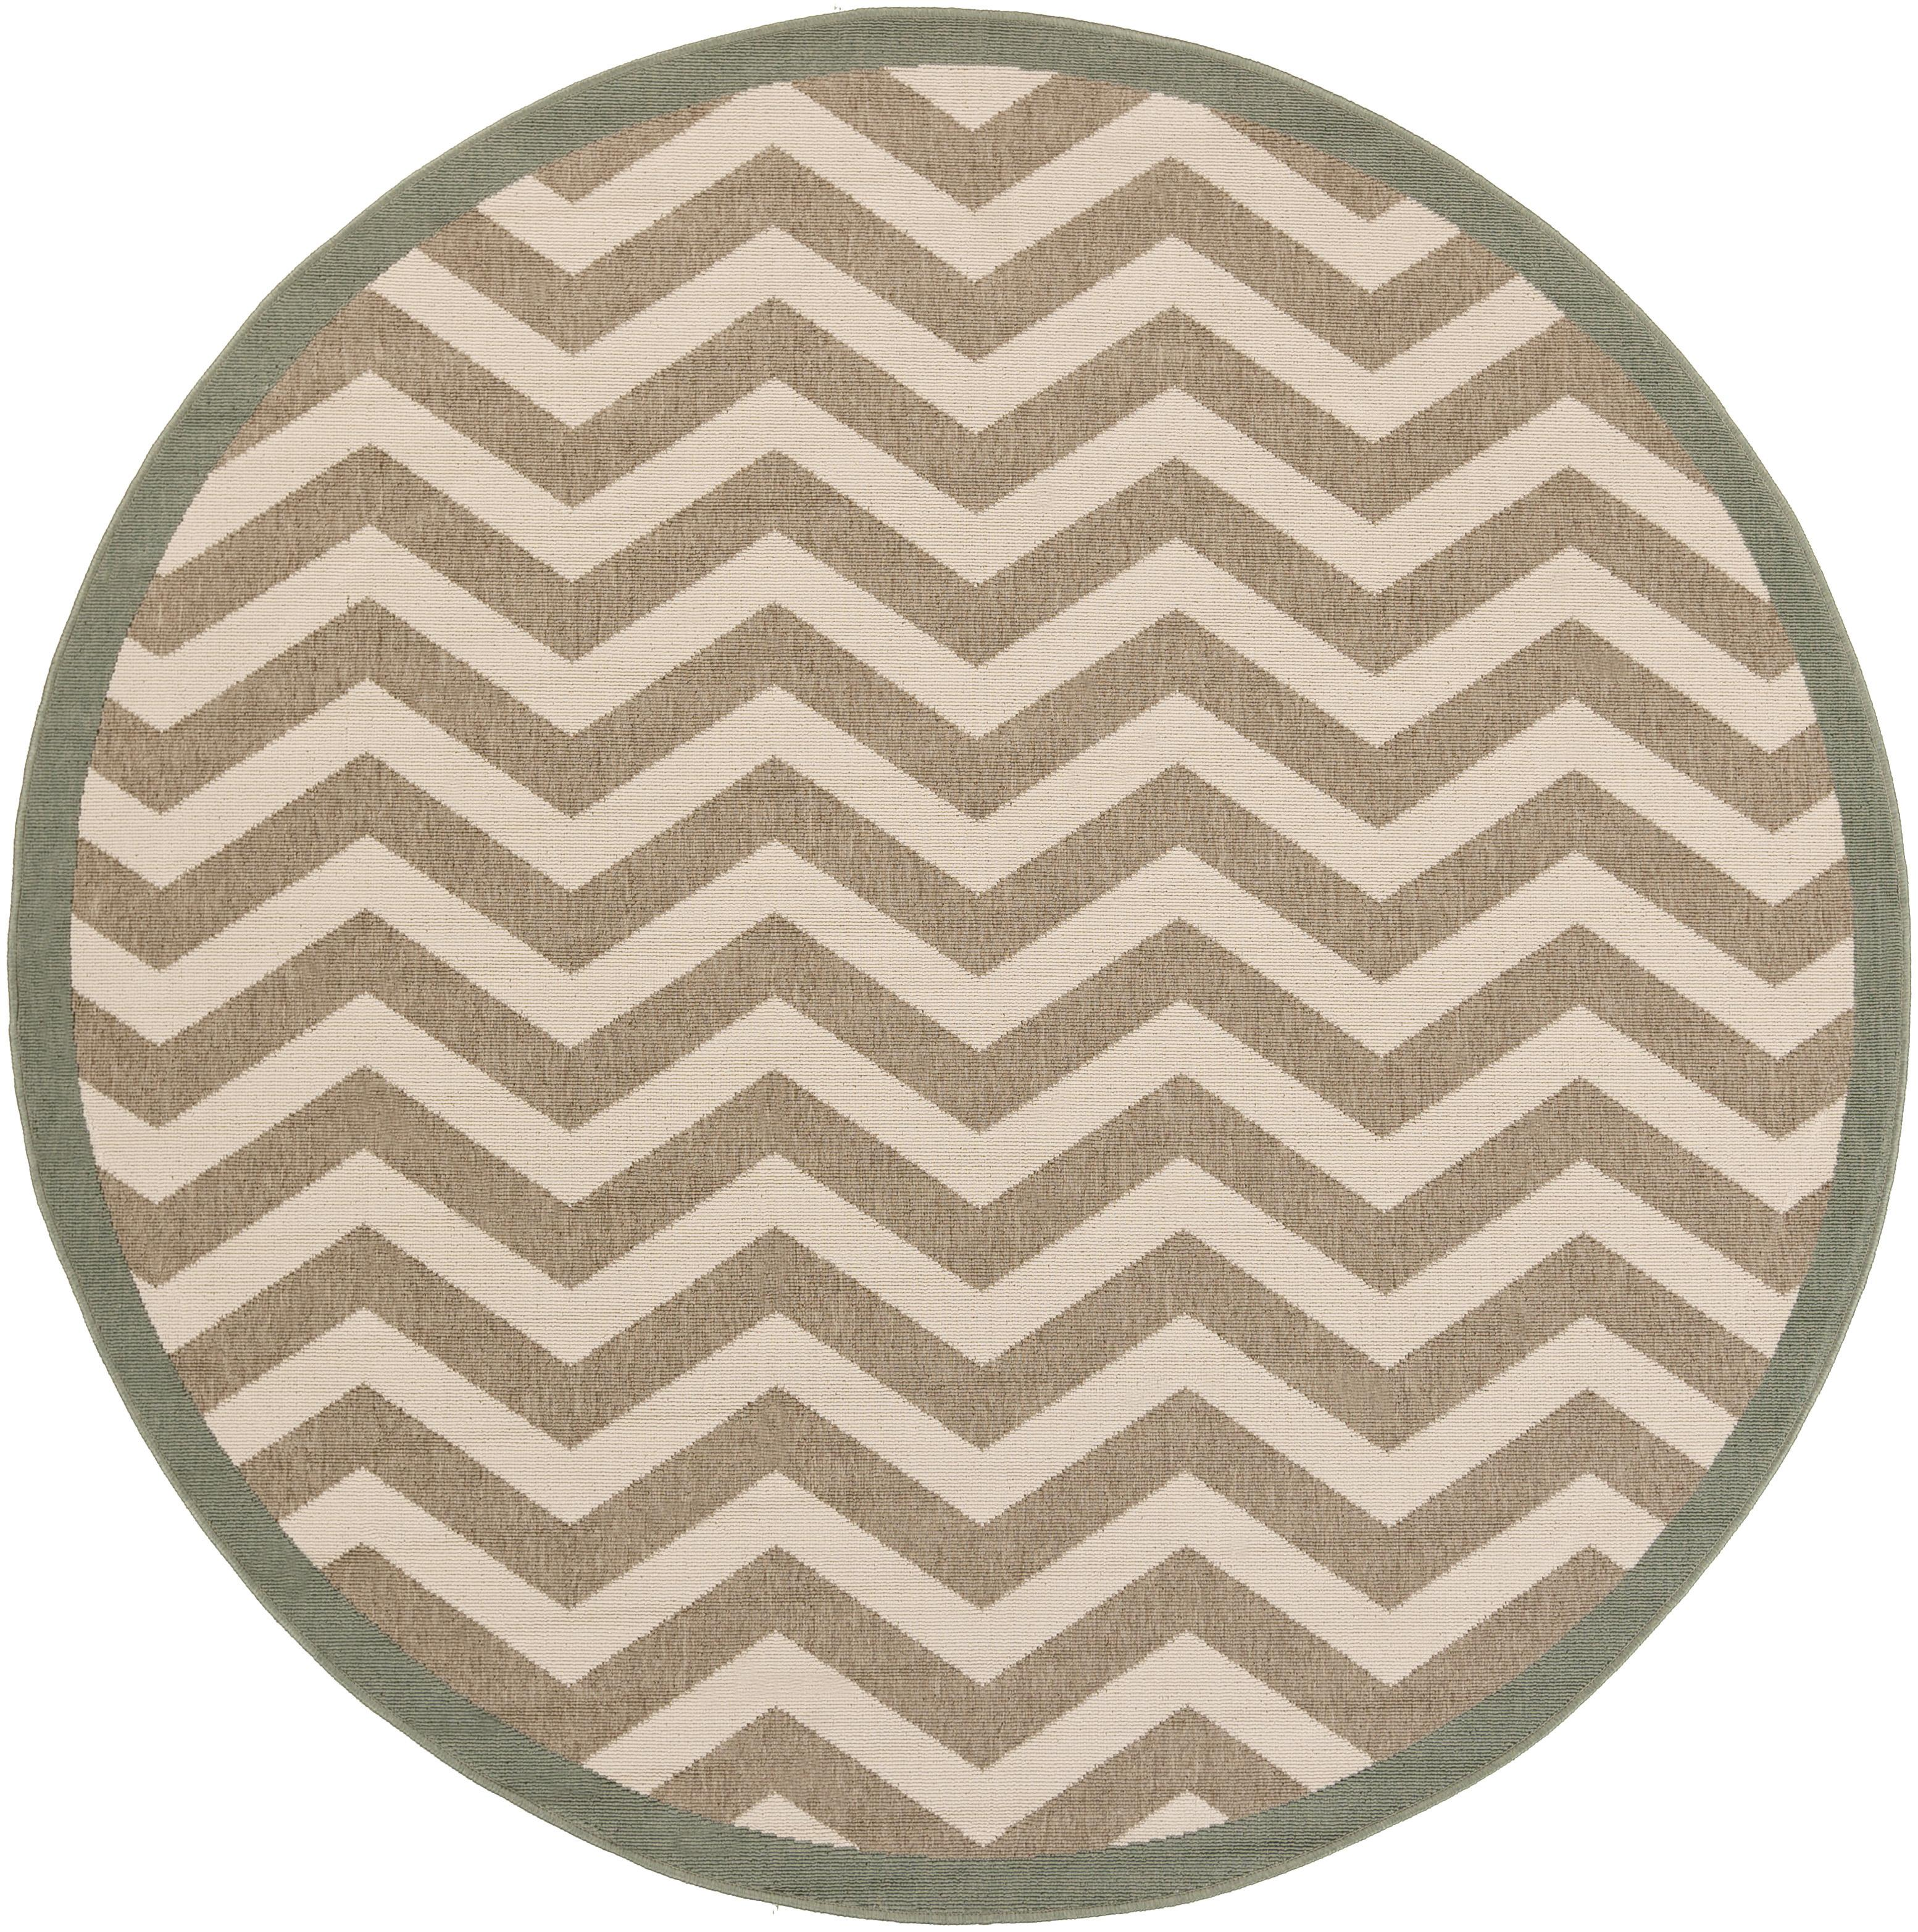 "Alfresco 5'3"" Round by Ruby-Gordon Accents at Ruby Gordon Home"